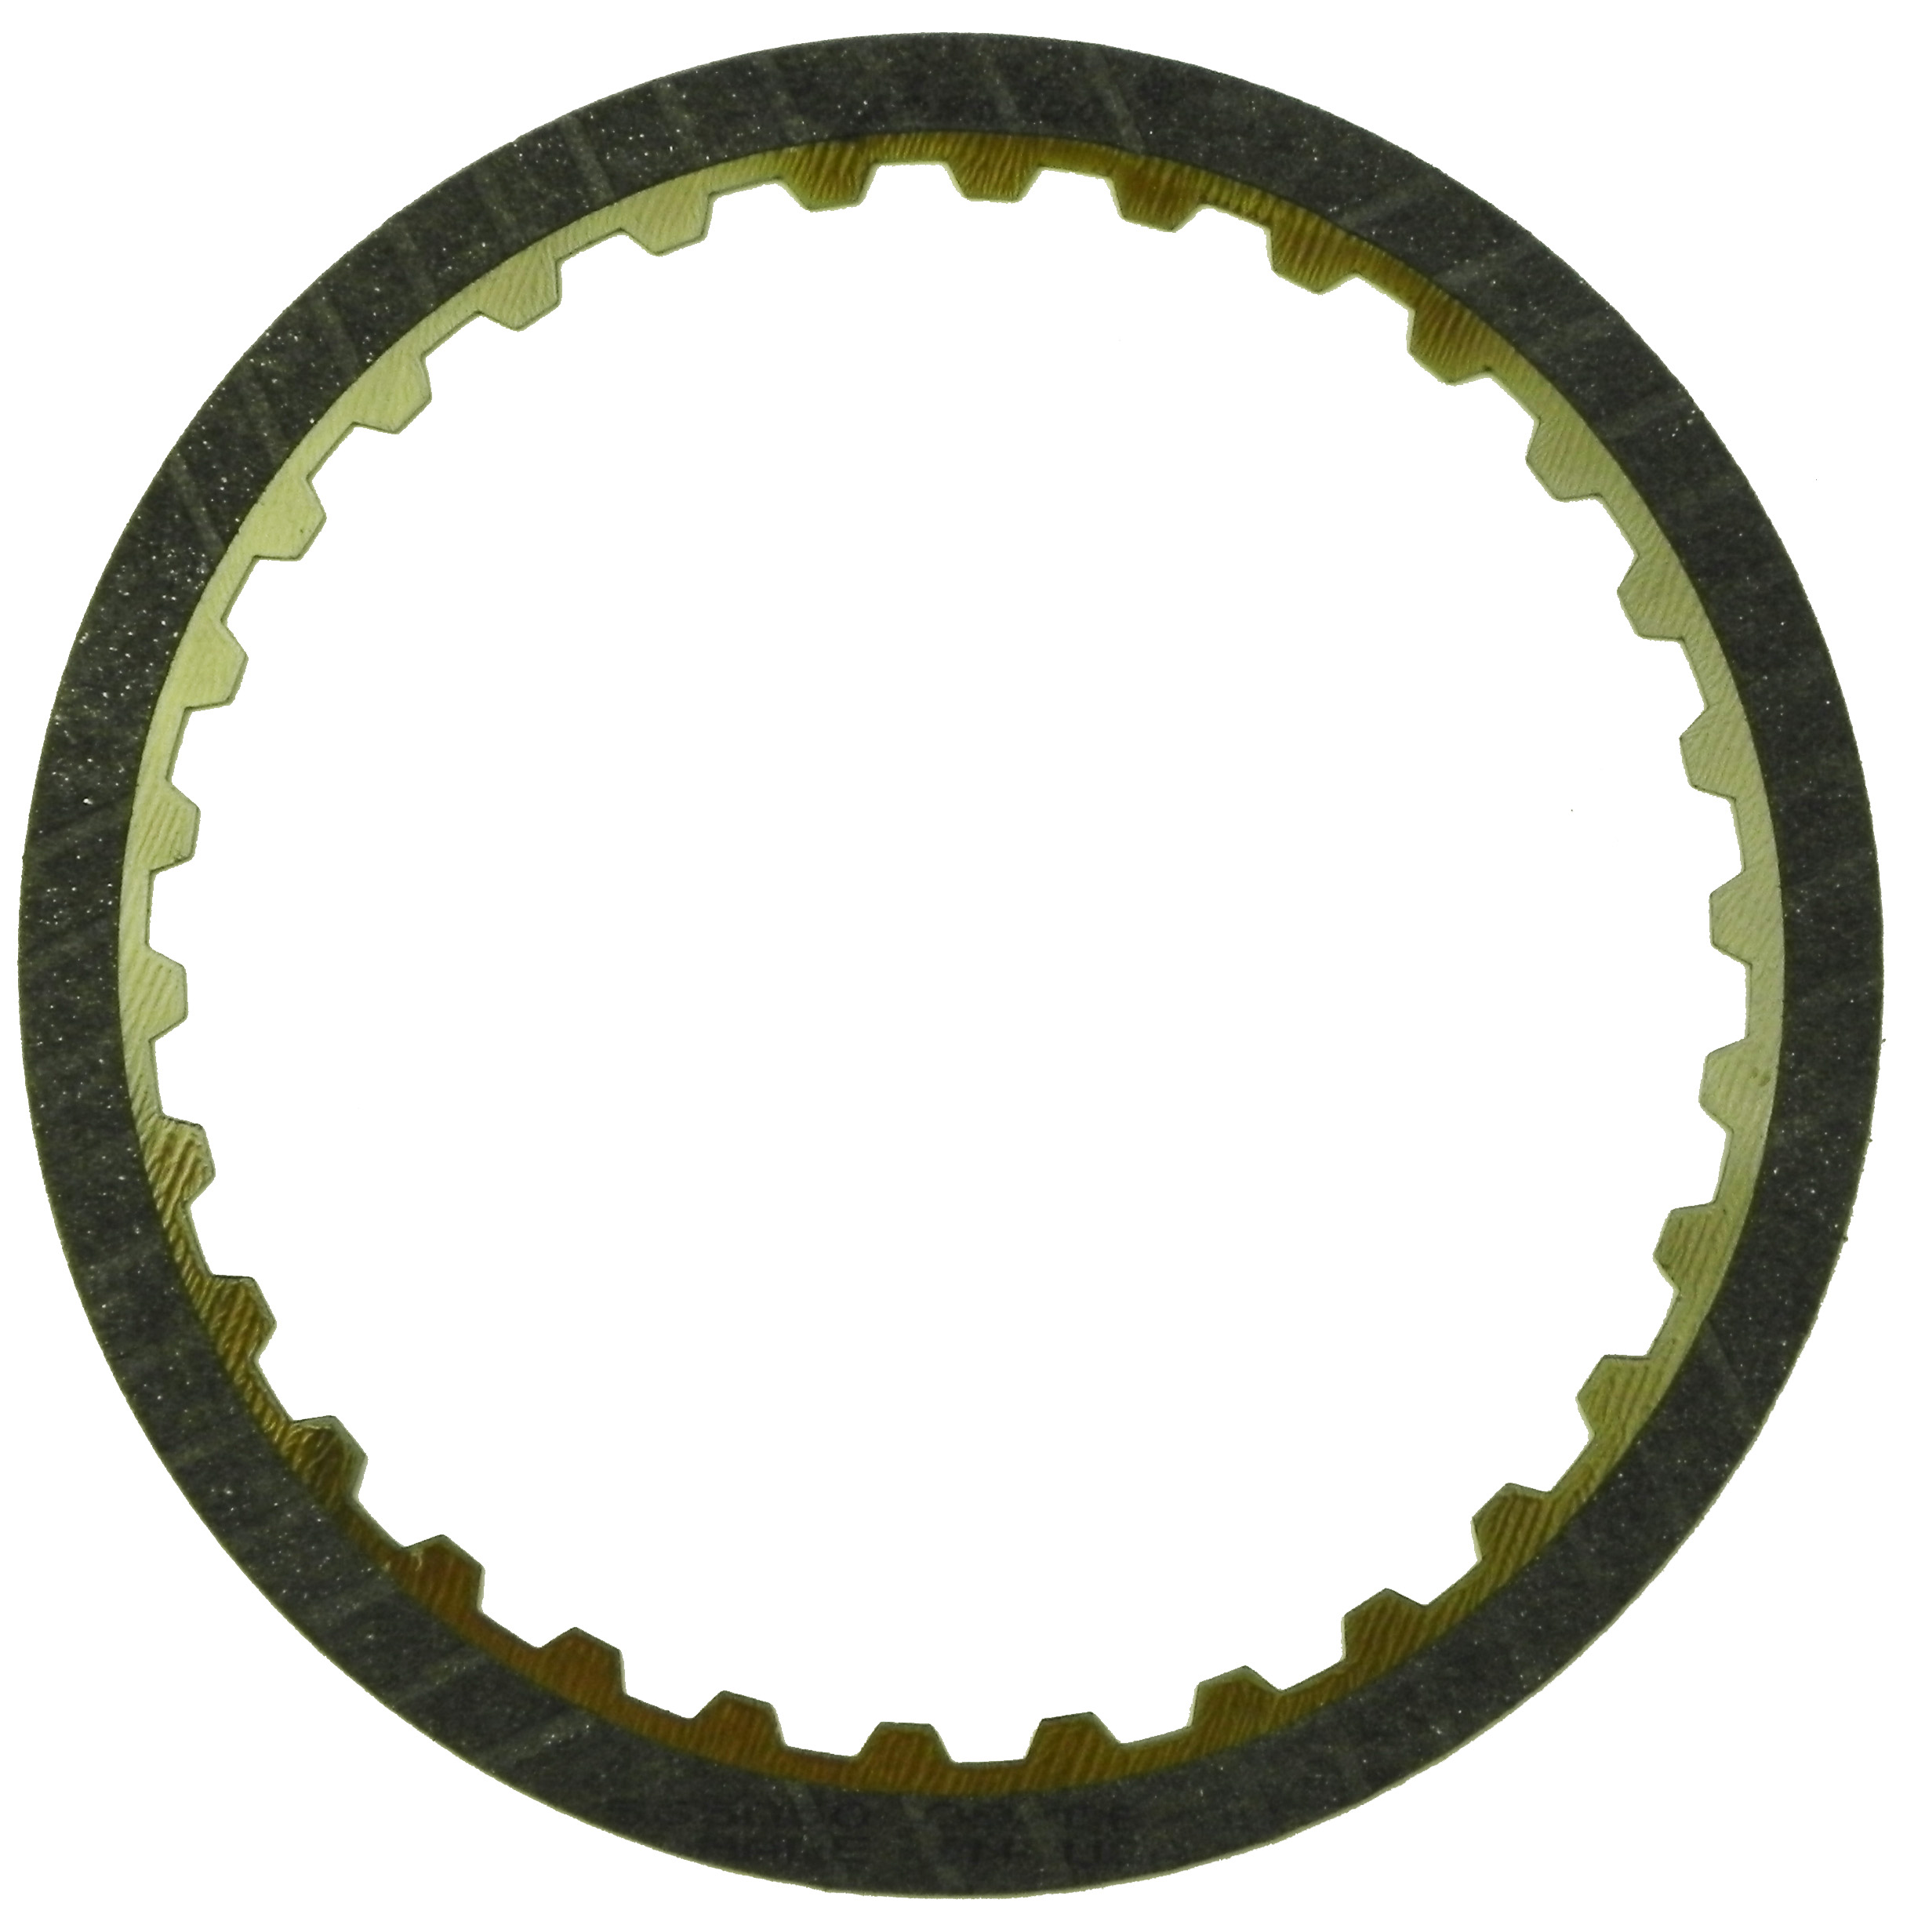 F4A41, F4A42, F5A42, F4A51, F4A51-2, F4A5A, F5A51, A5GF1 High Energy Friction Clutch Plate